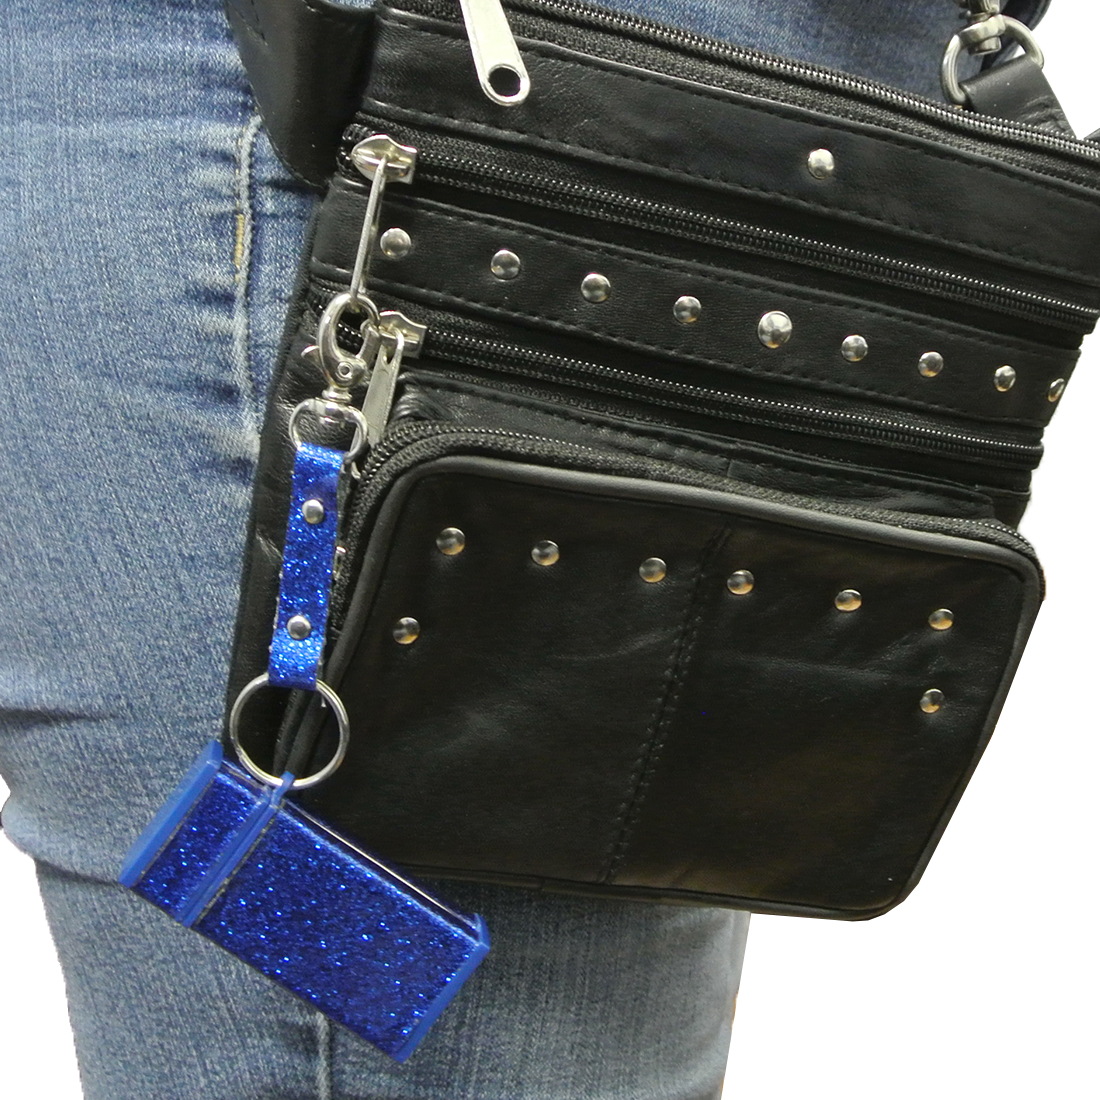 d00c8ee5320c Texcyngoods Leather Belt Bag Studded Fanny Pack Converts to Cross Body Purse